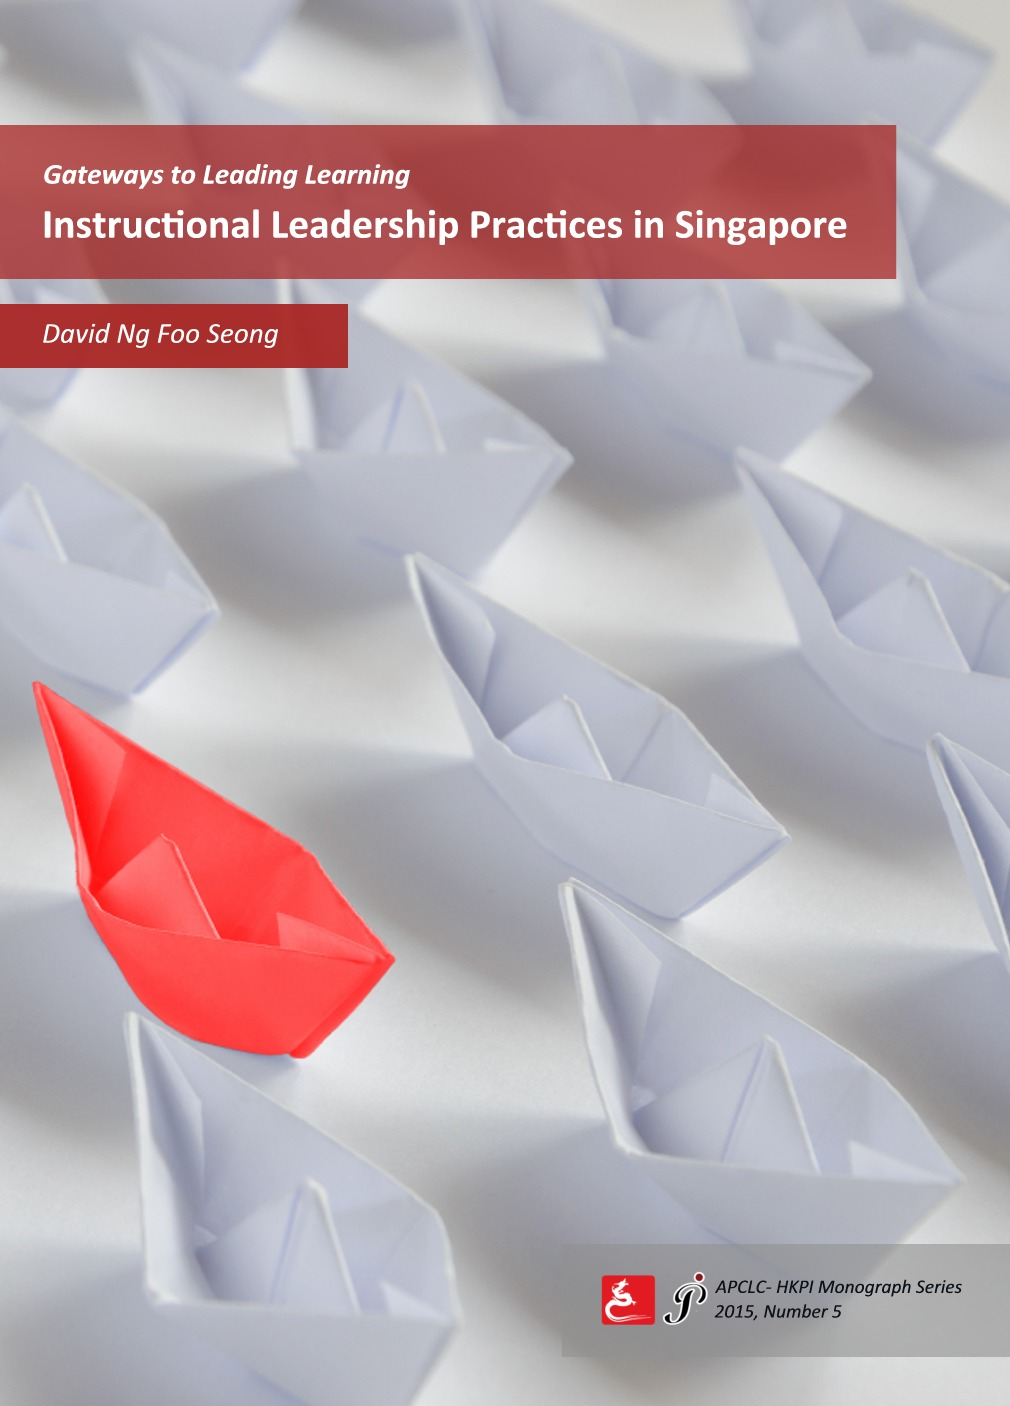 Leadership Activities and Behaviours that Enable Classroom